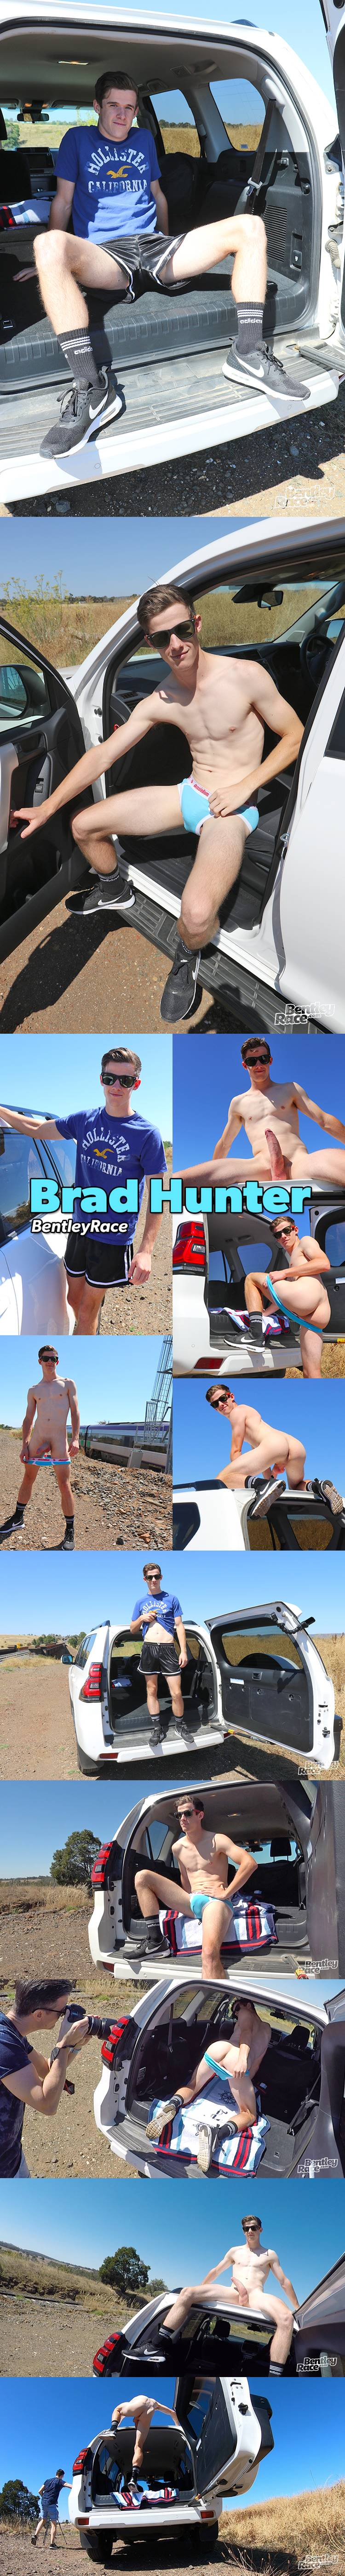 Bentley Race Presents Brad Hunter